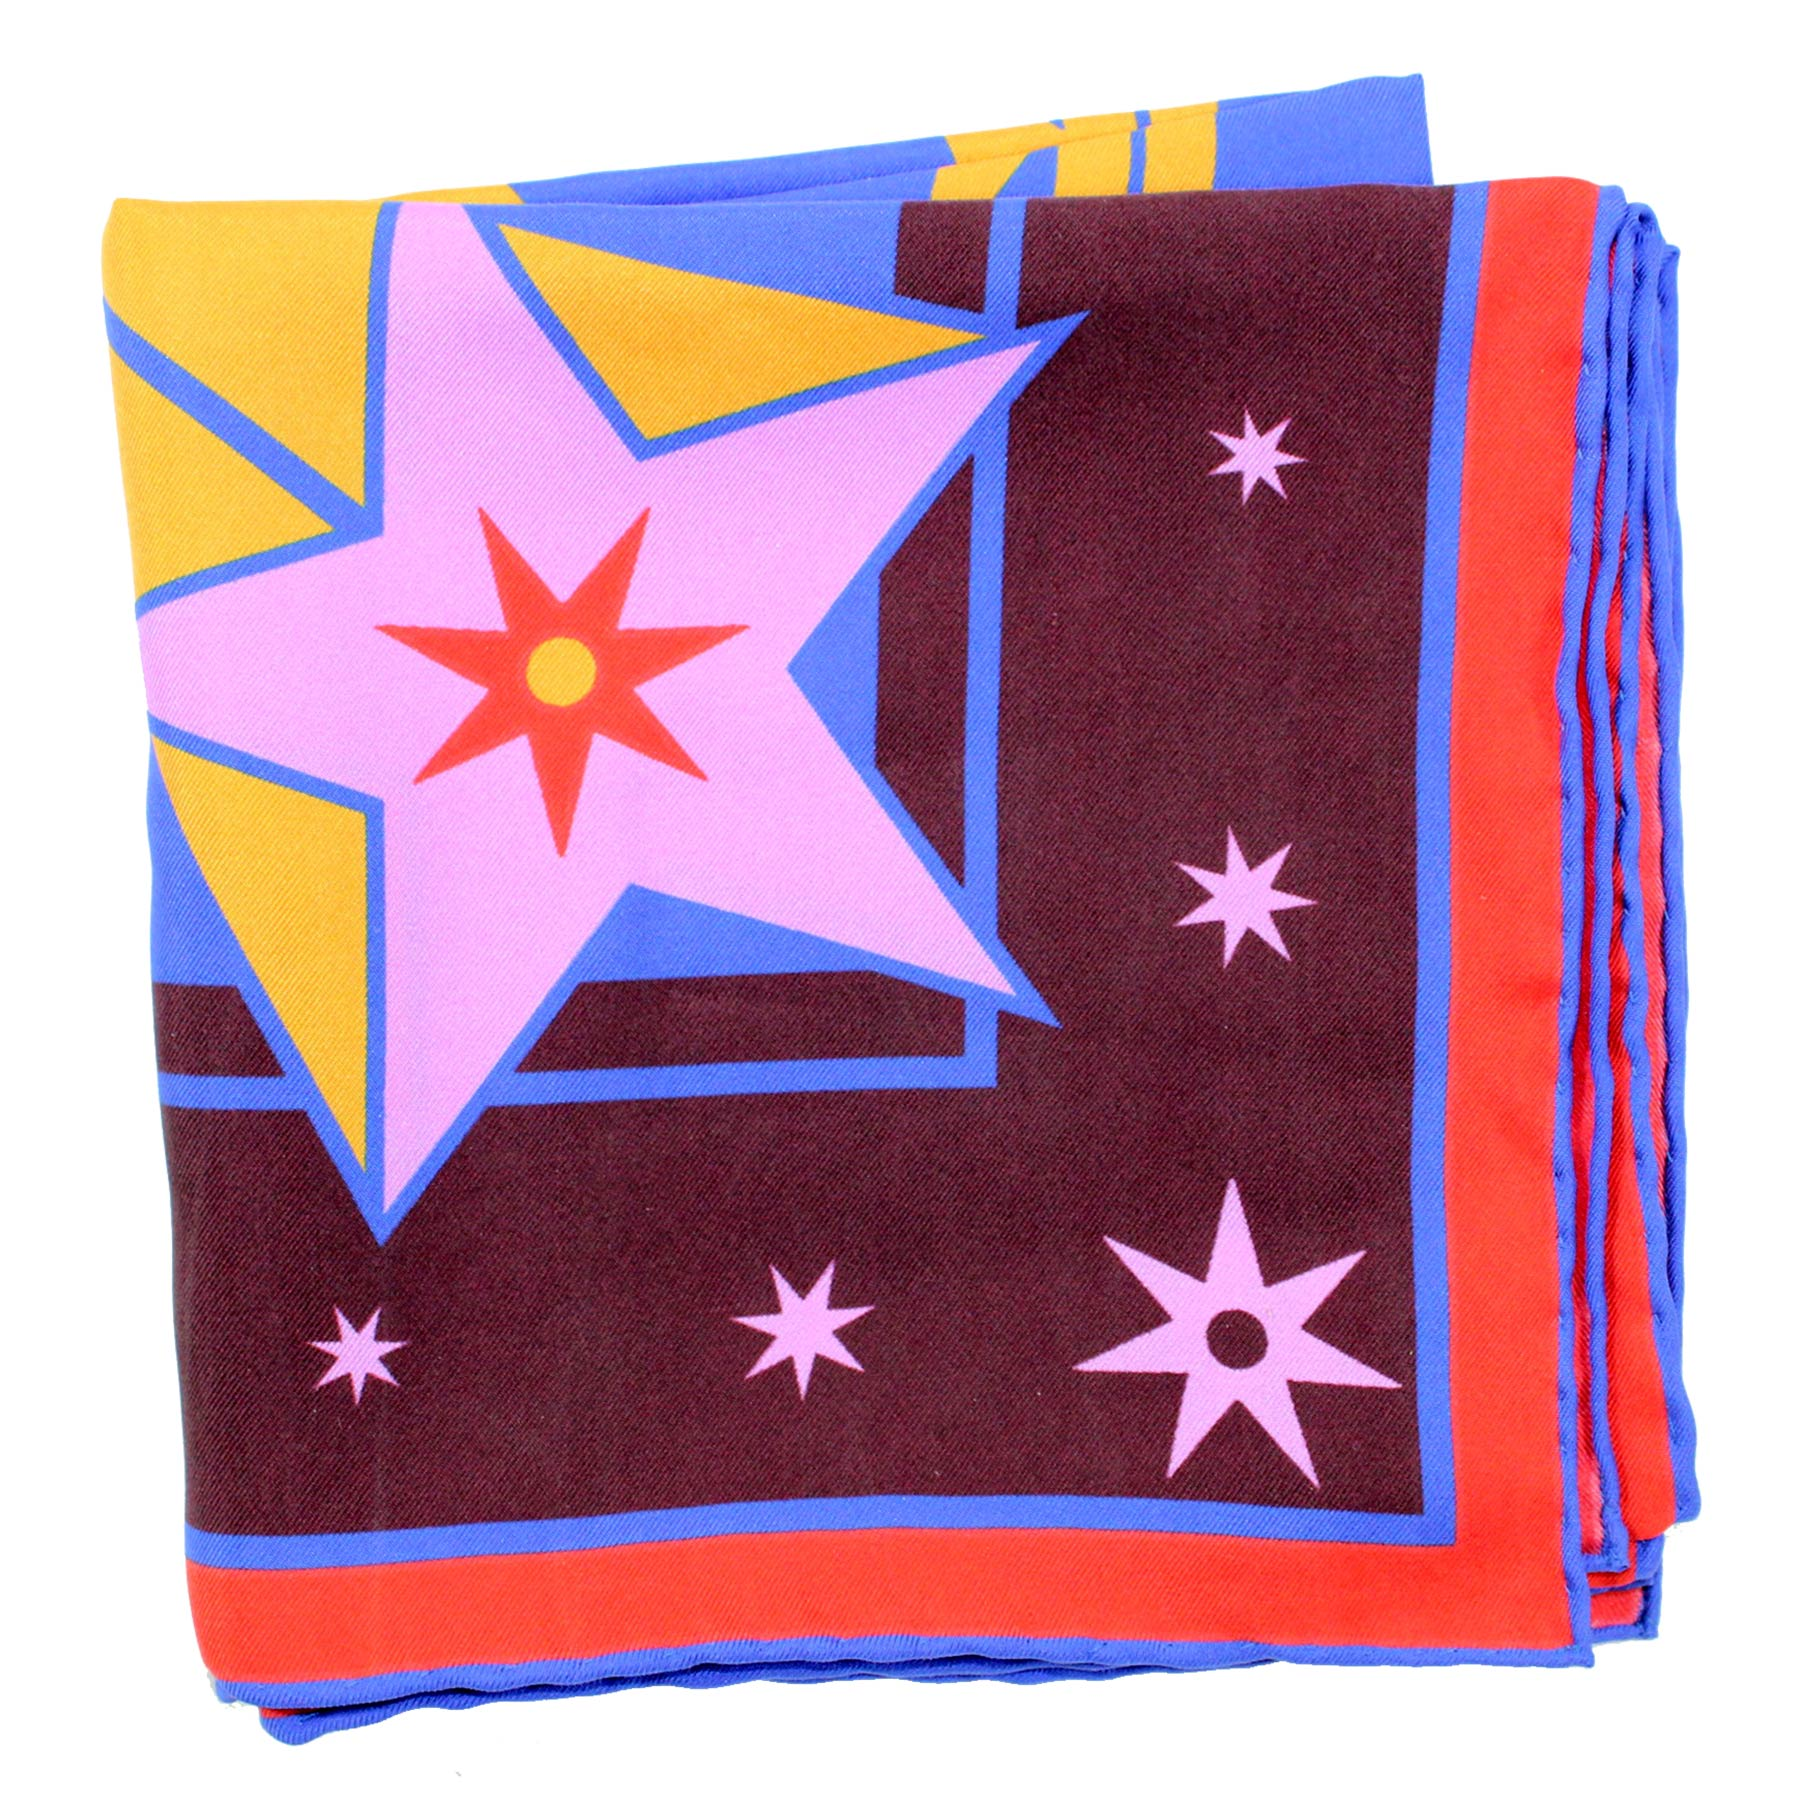 Givenchy Scarf Purple Pink Electrified Stars - Twill Silk Square Scarf